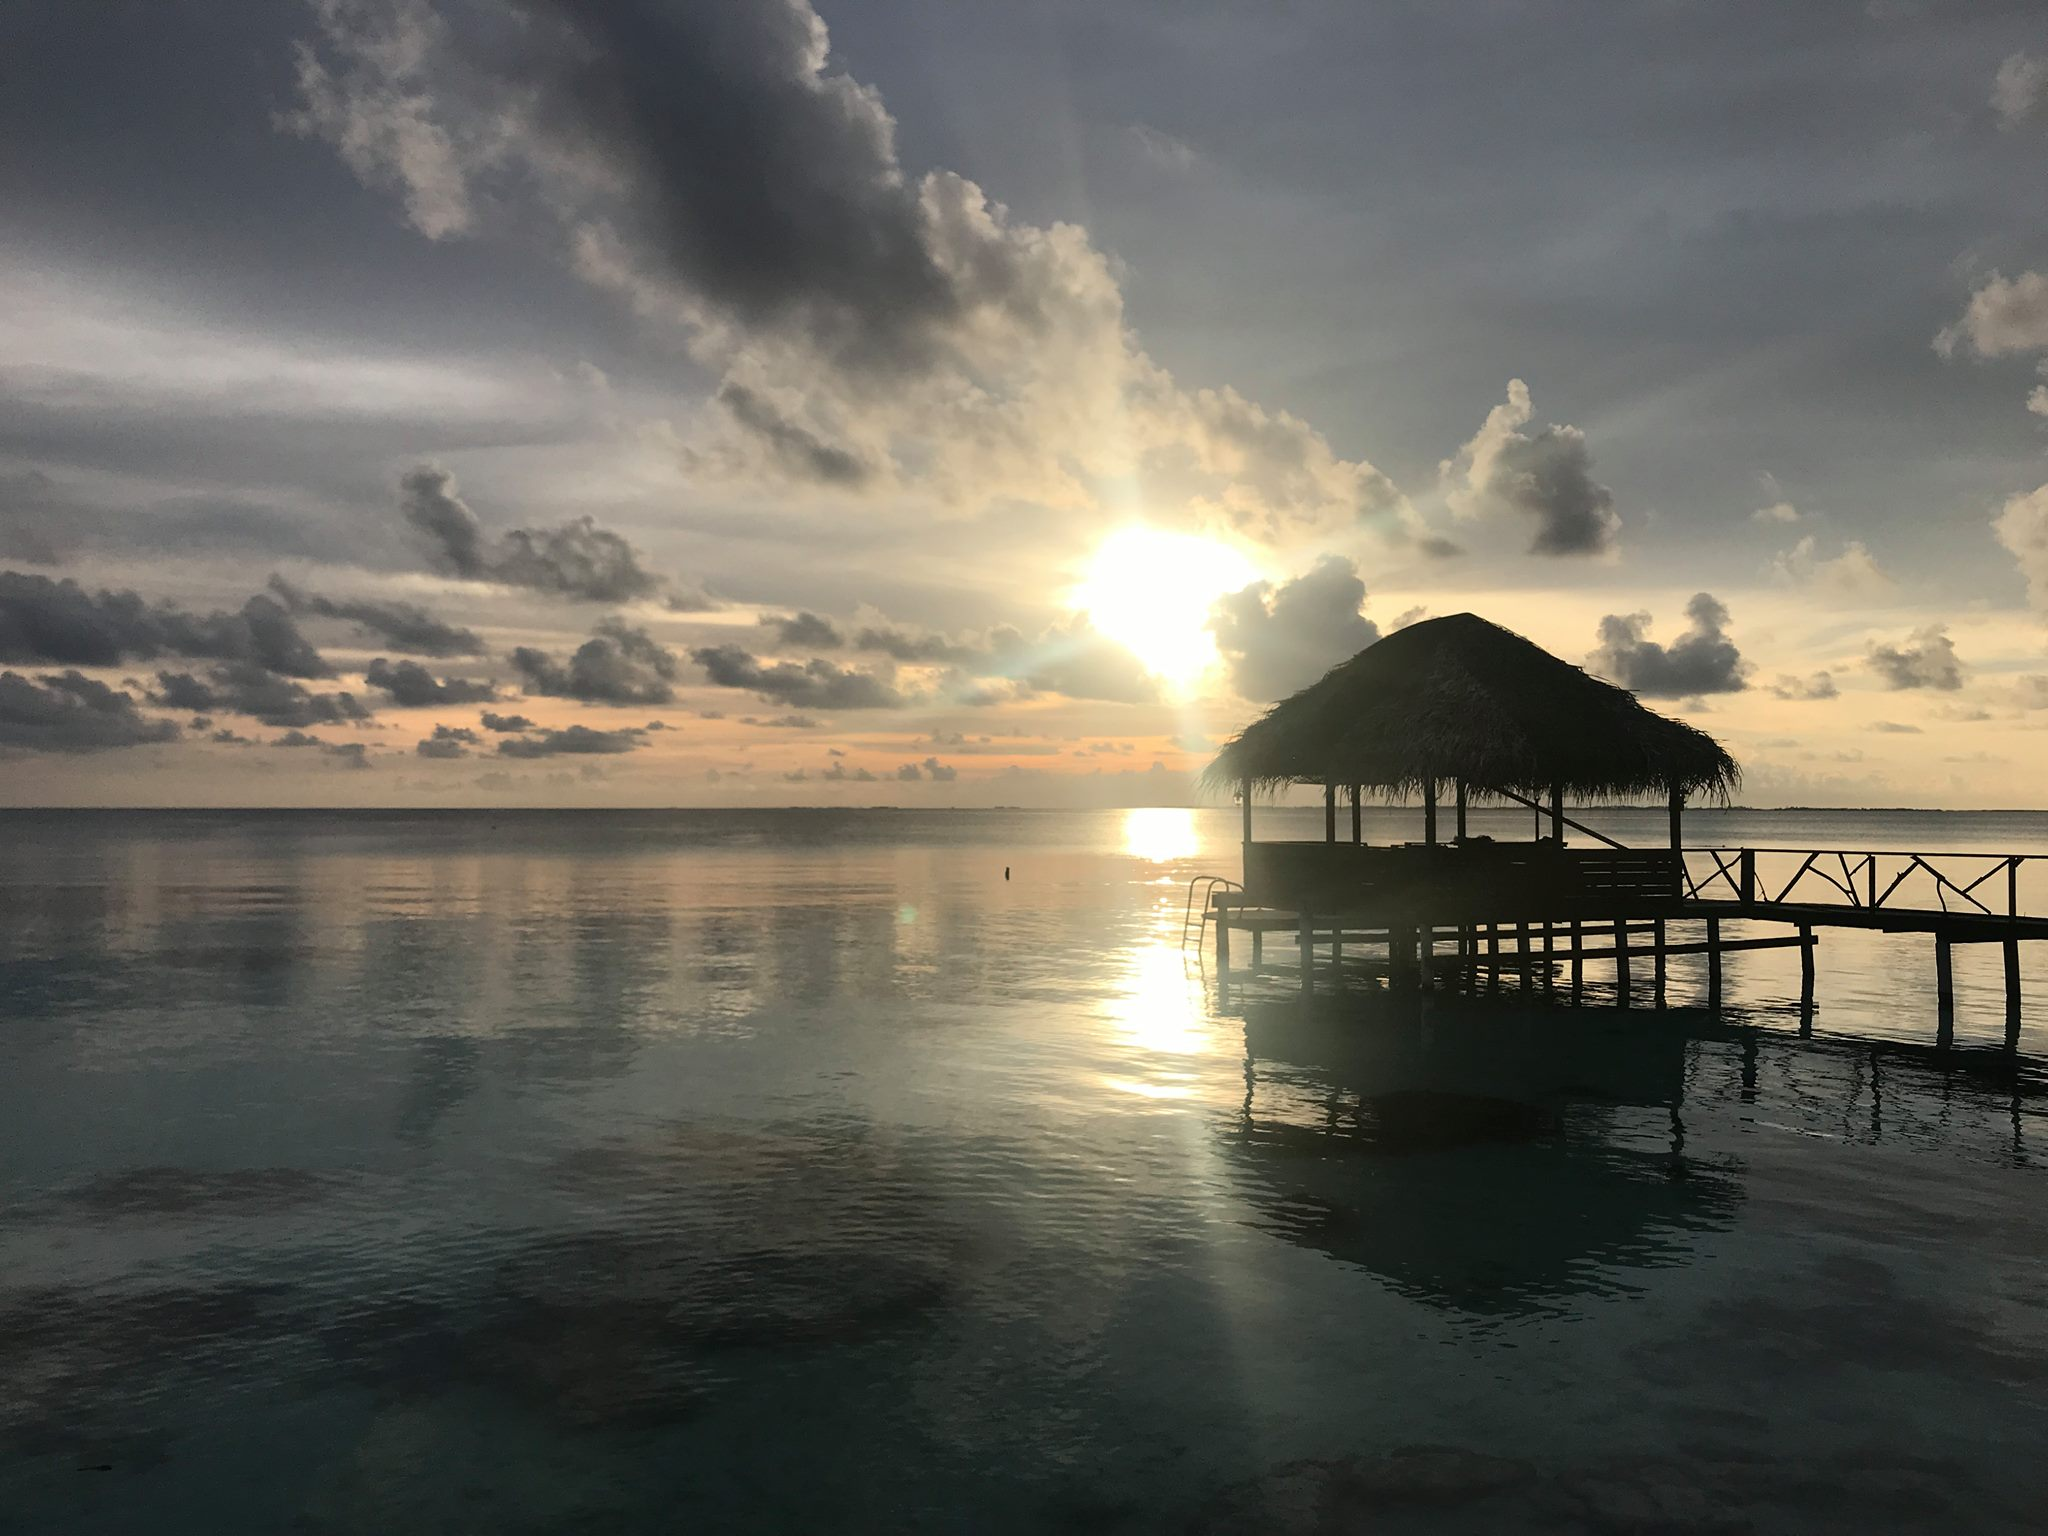 https://tahititourisme.ca/wp-content/uploads/2017/08/vuecouchedesoleil.jpg